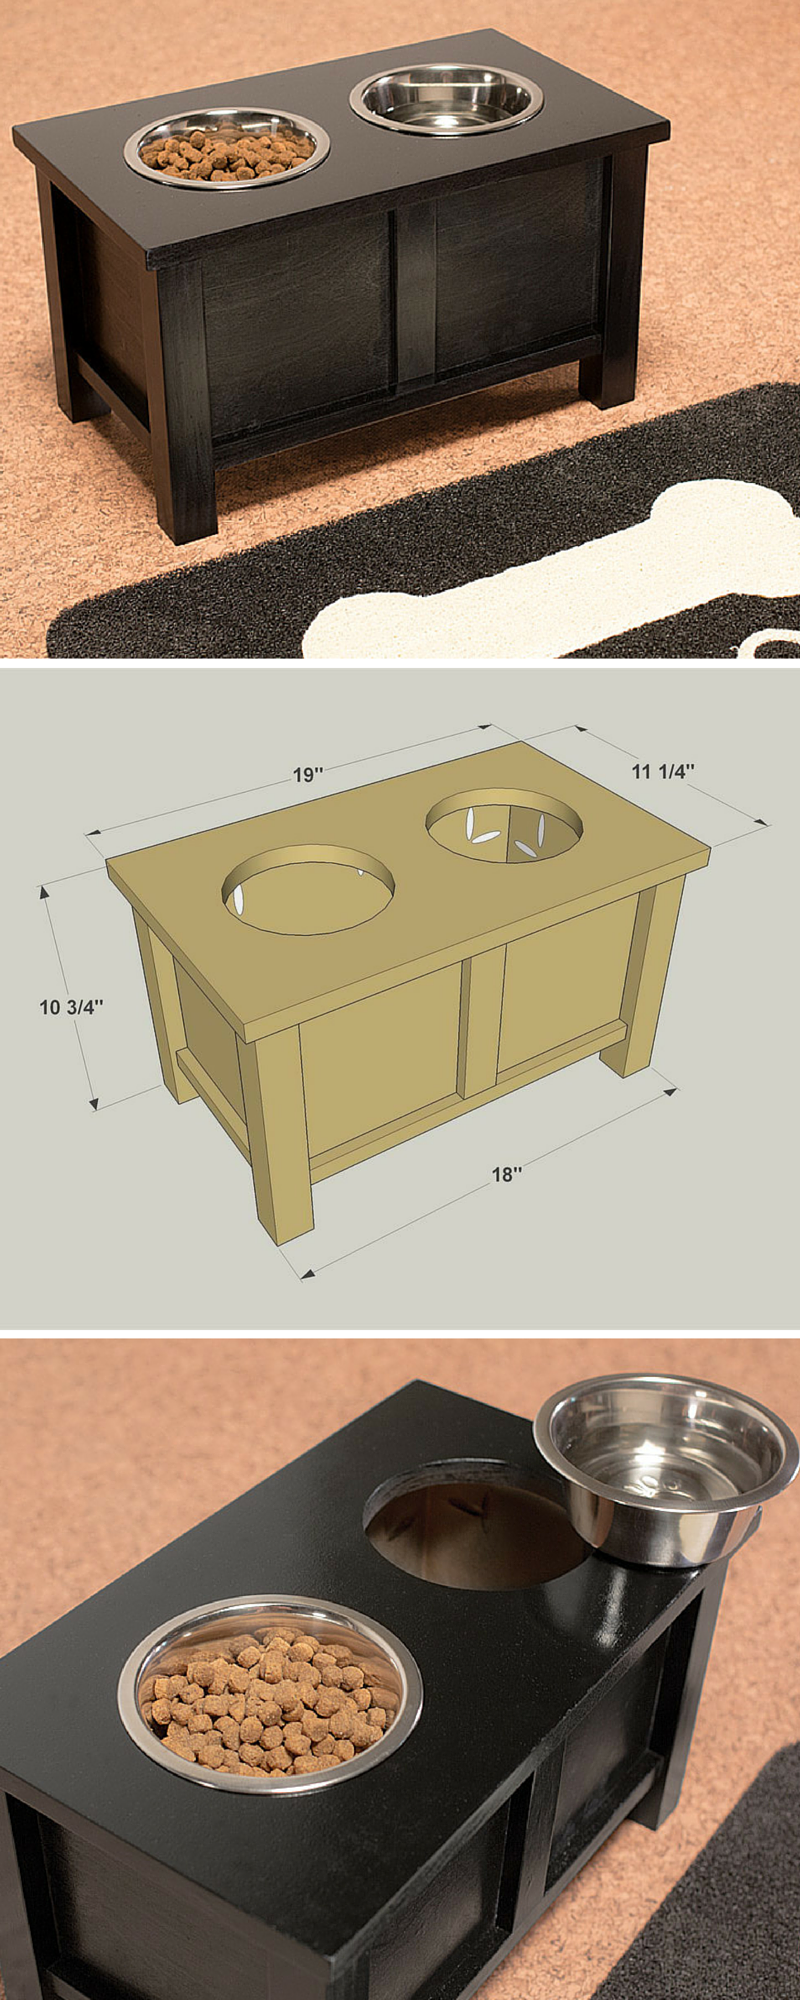 how to build a diy raised dog bowl stand free printable project plans at buildsomething com elevate your dog s dining experience with a raised stand for  [ 800 x 2000 Pixel ]